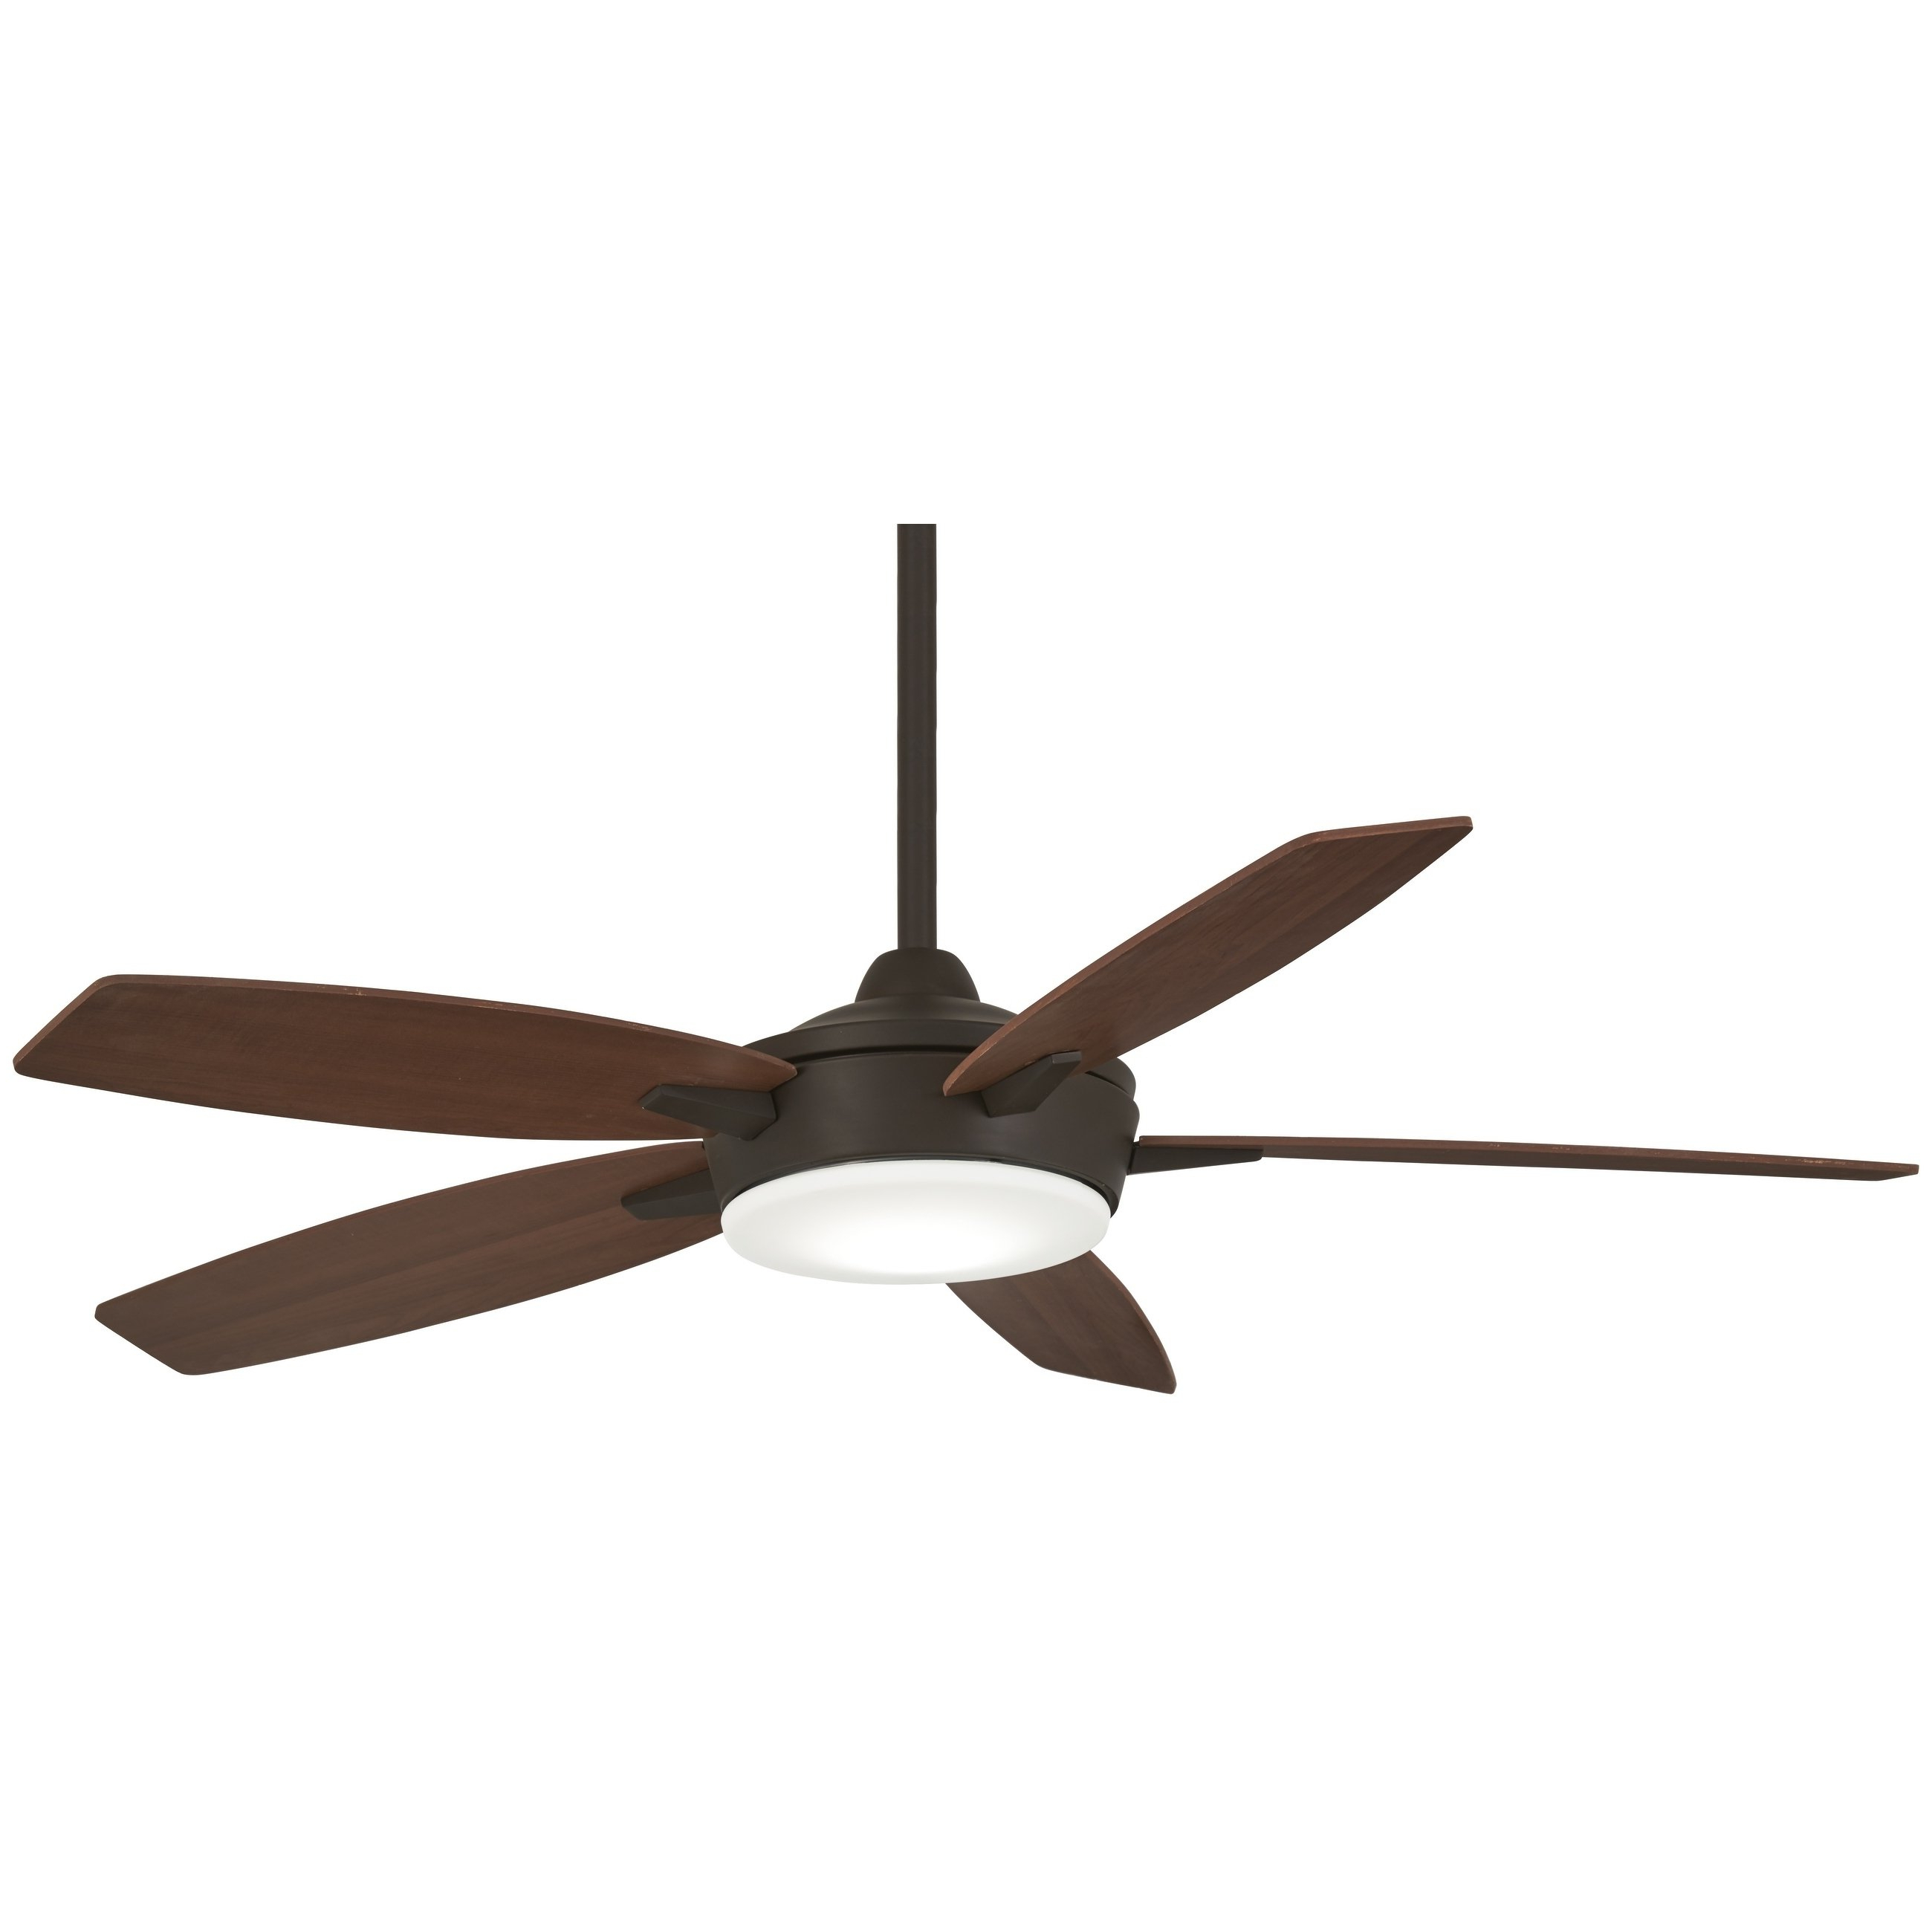 "Wilburton 3 Blade Outdoor Ceiling Fans In Favorite Espace 52"" Led Ceiling Fan In Oil Rubbed Bronze/medium Maple (View 9 of 20)"